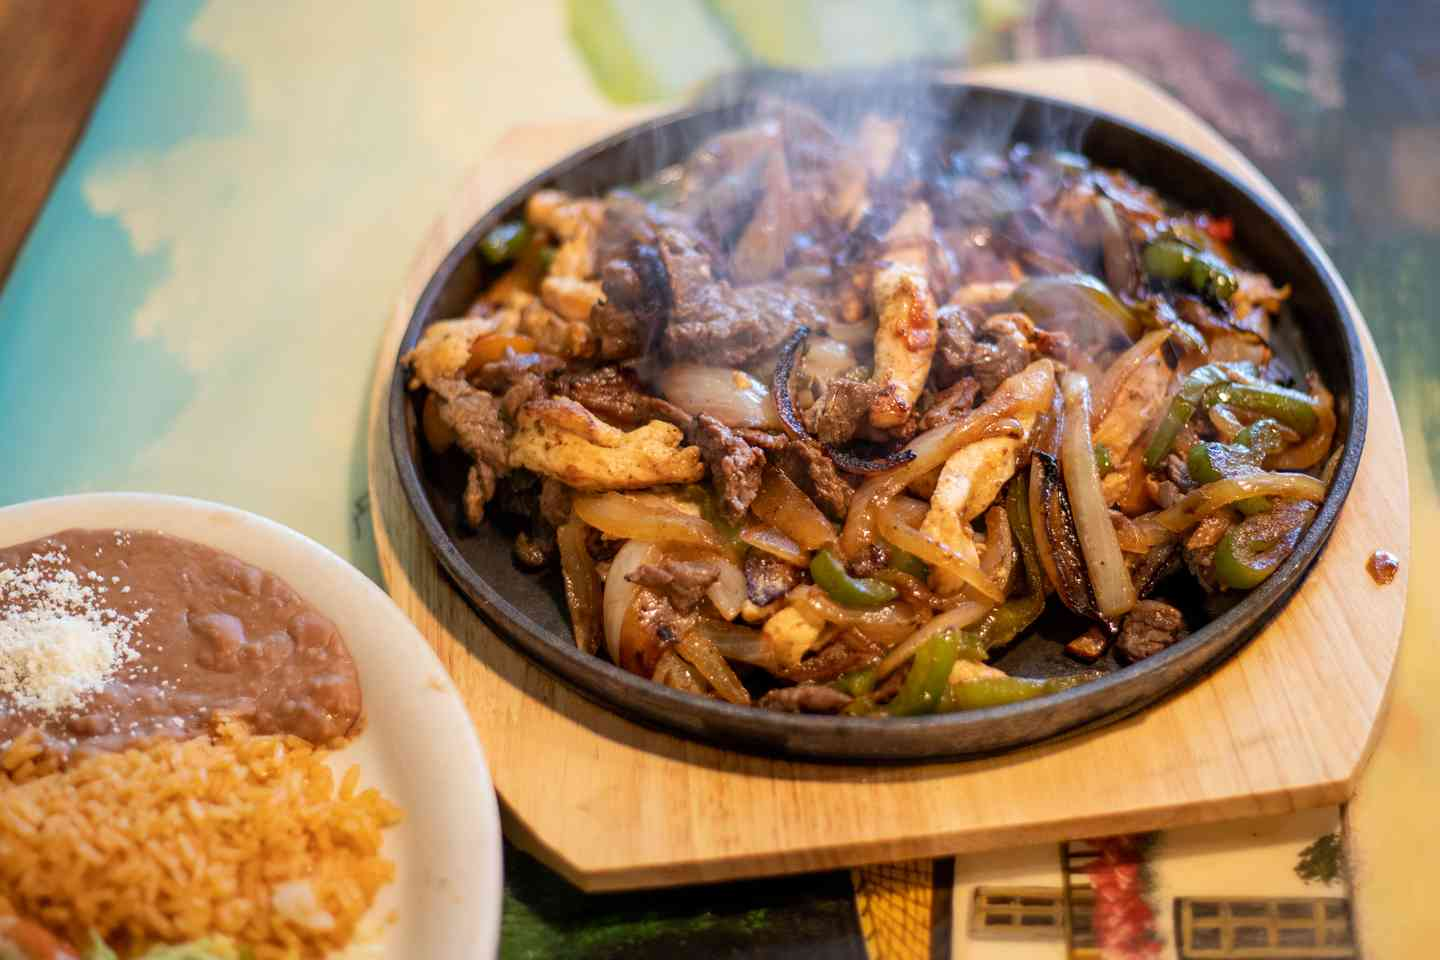 Fajitas For Two - Chicken, Steak or Combination